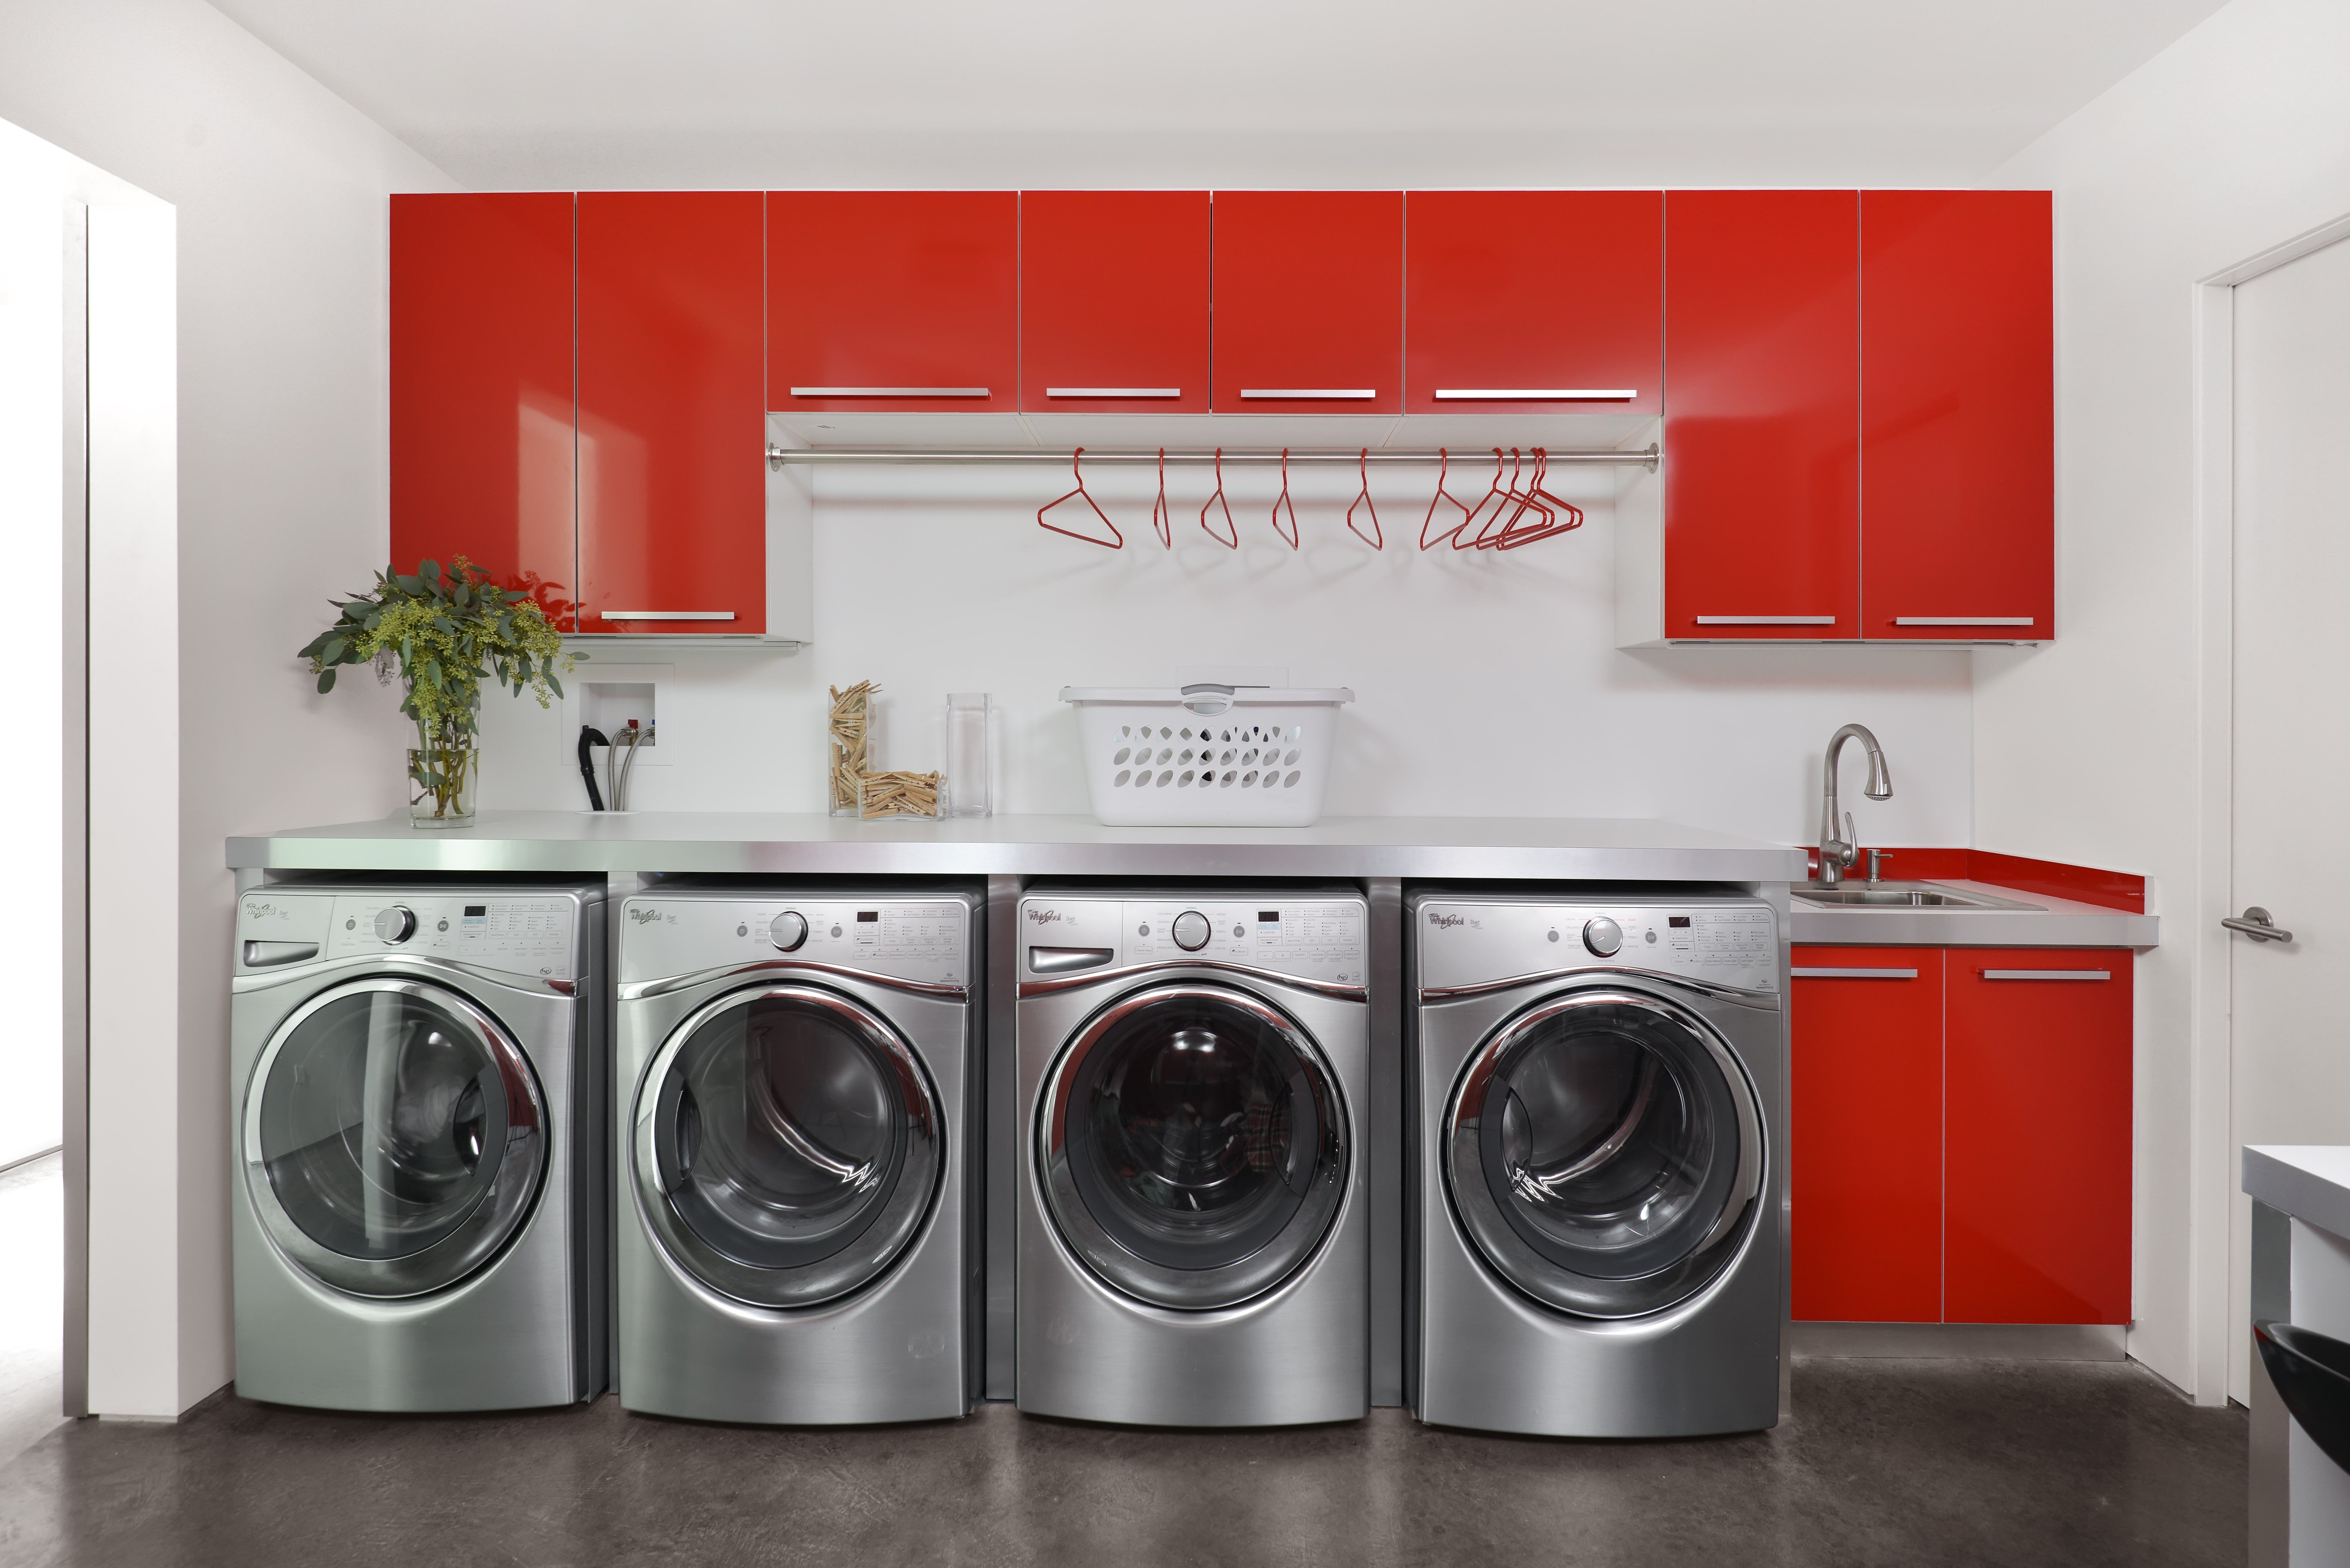 25 Best Laundry Rooms - Lovely & Functional Laundry Room Ideas